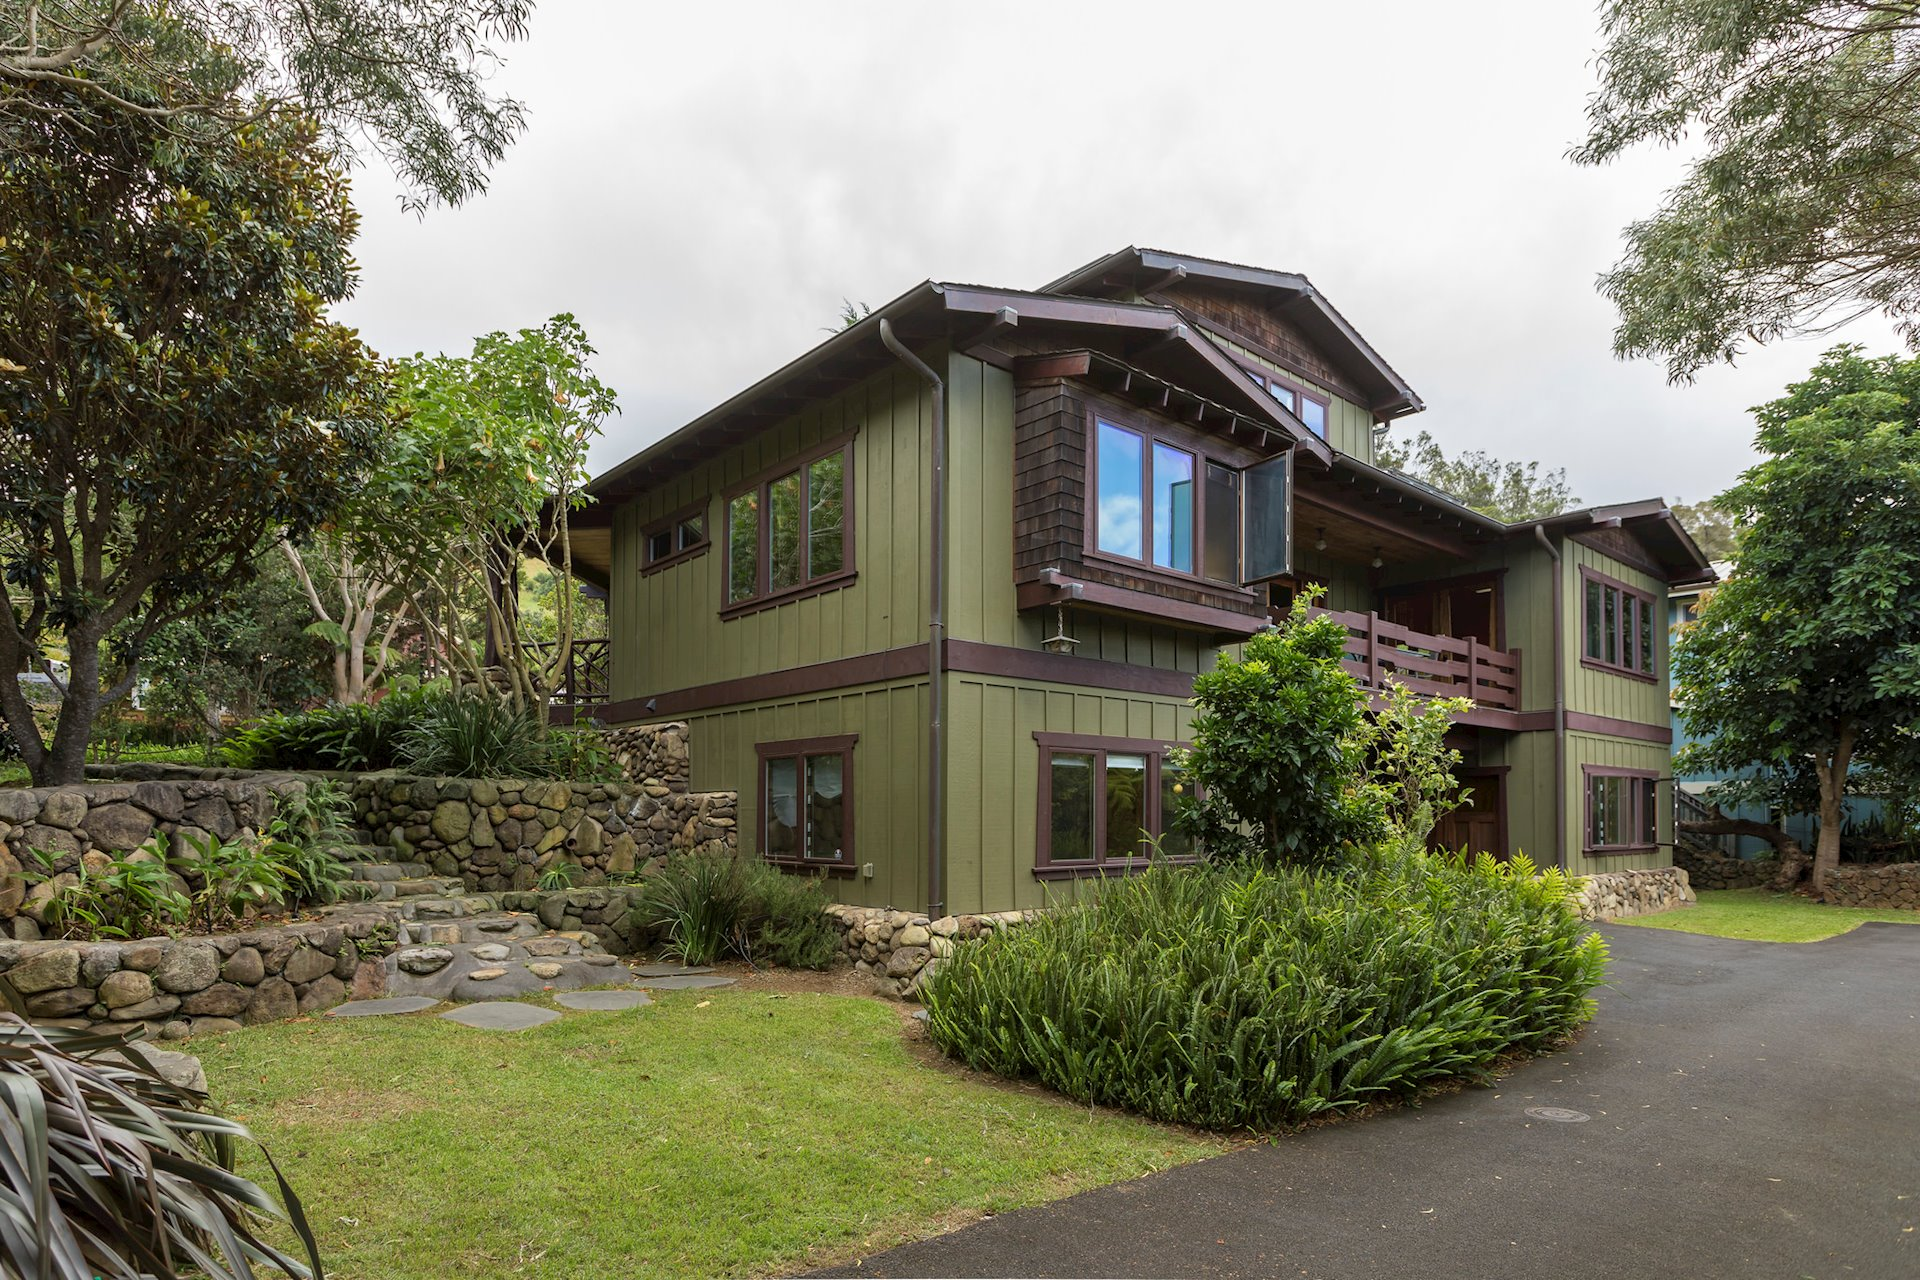 The look, colors and detailing of this home stands out and yet fits perfectly into the upcountry lifestyle of Waimea. Hand laid stone garden to the left in this photo.